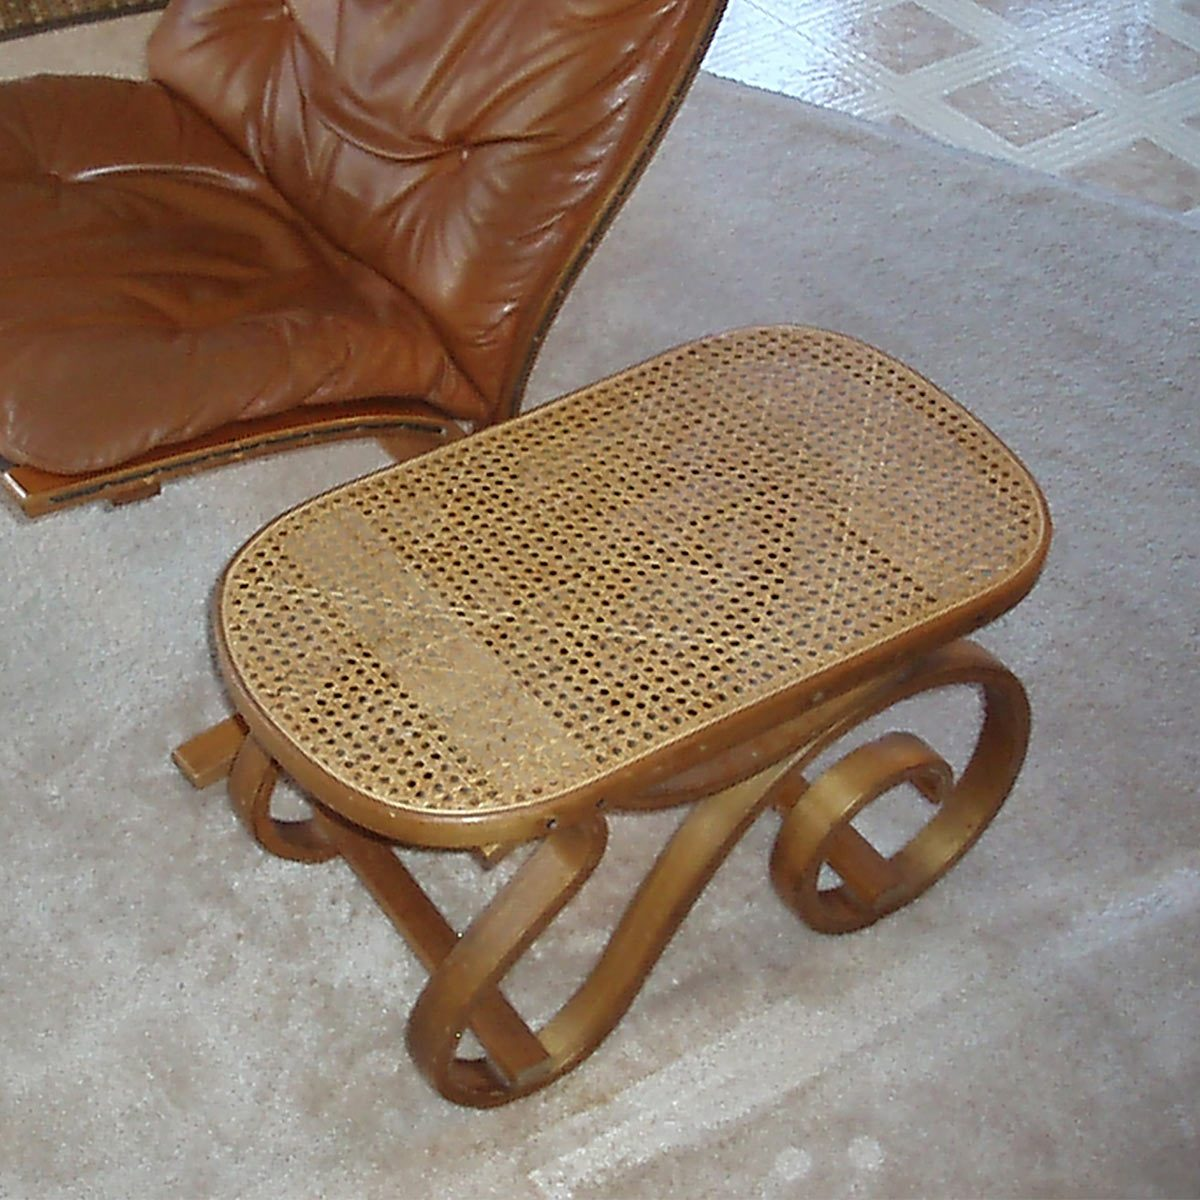 A Neighbor Had Set Out For The Trash Bentwood Rocker With Cane Seat And One Broken